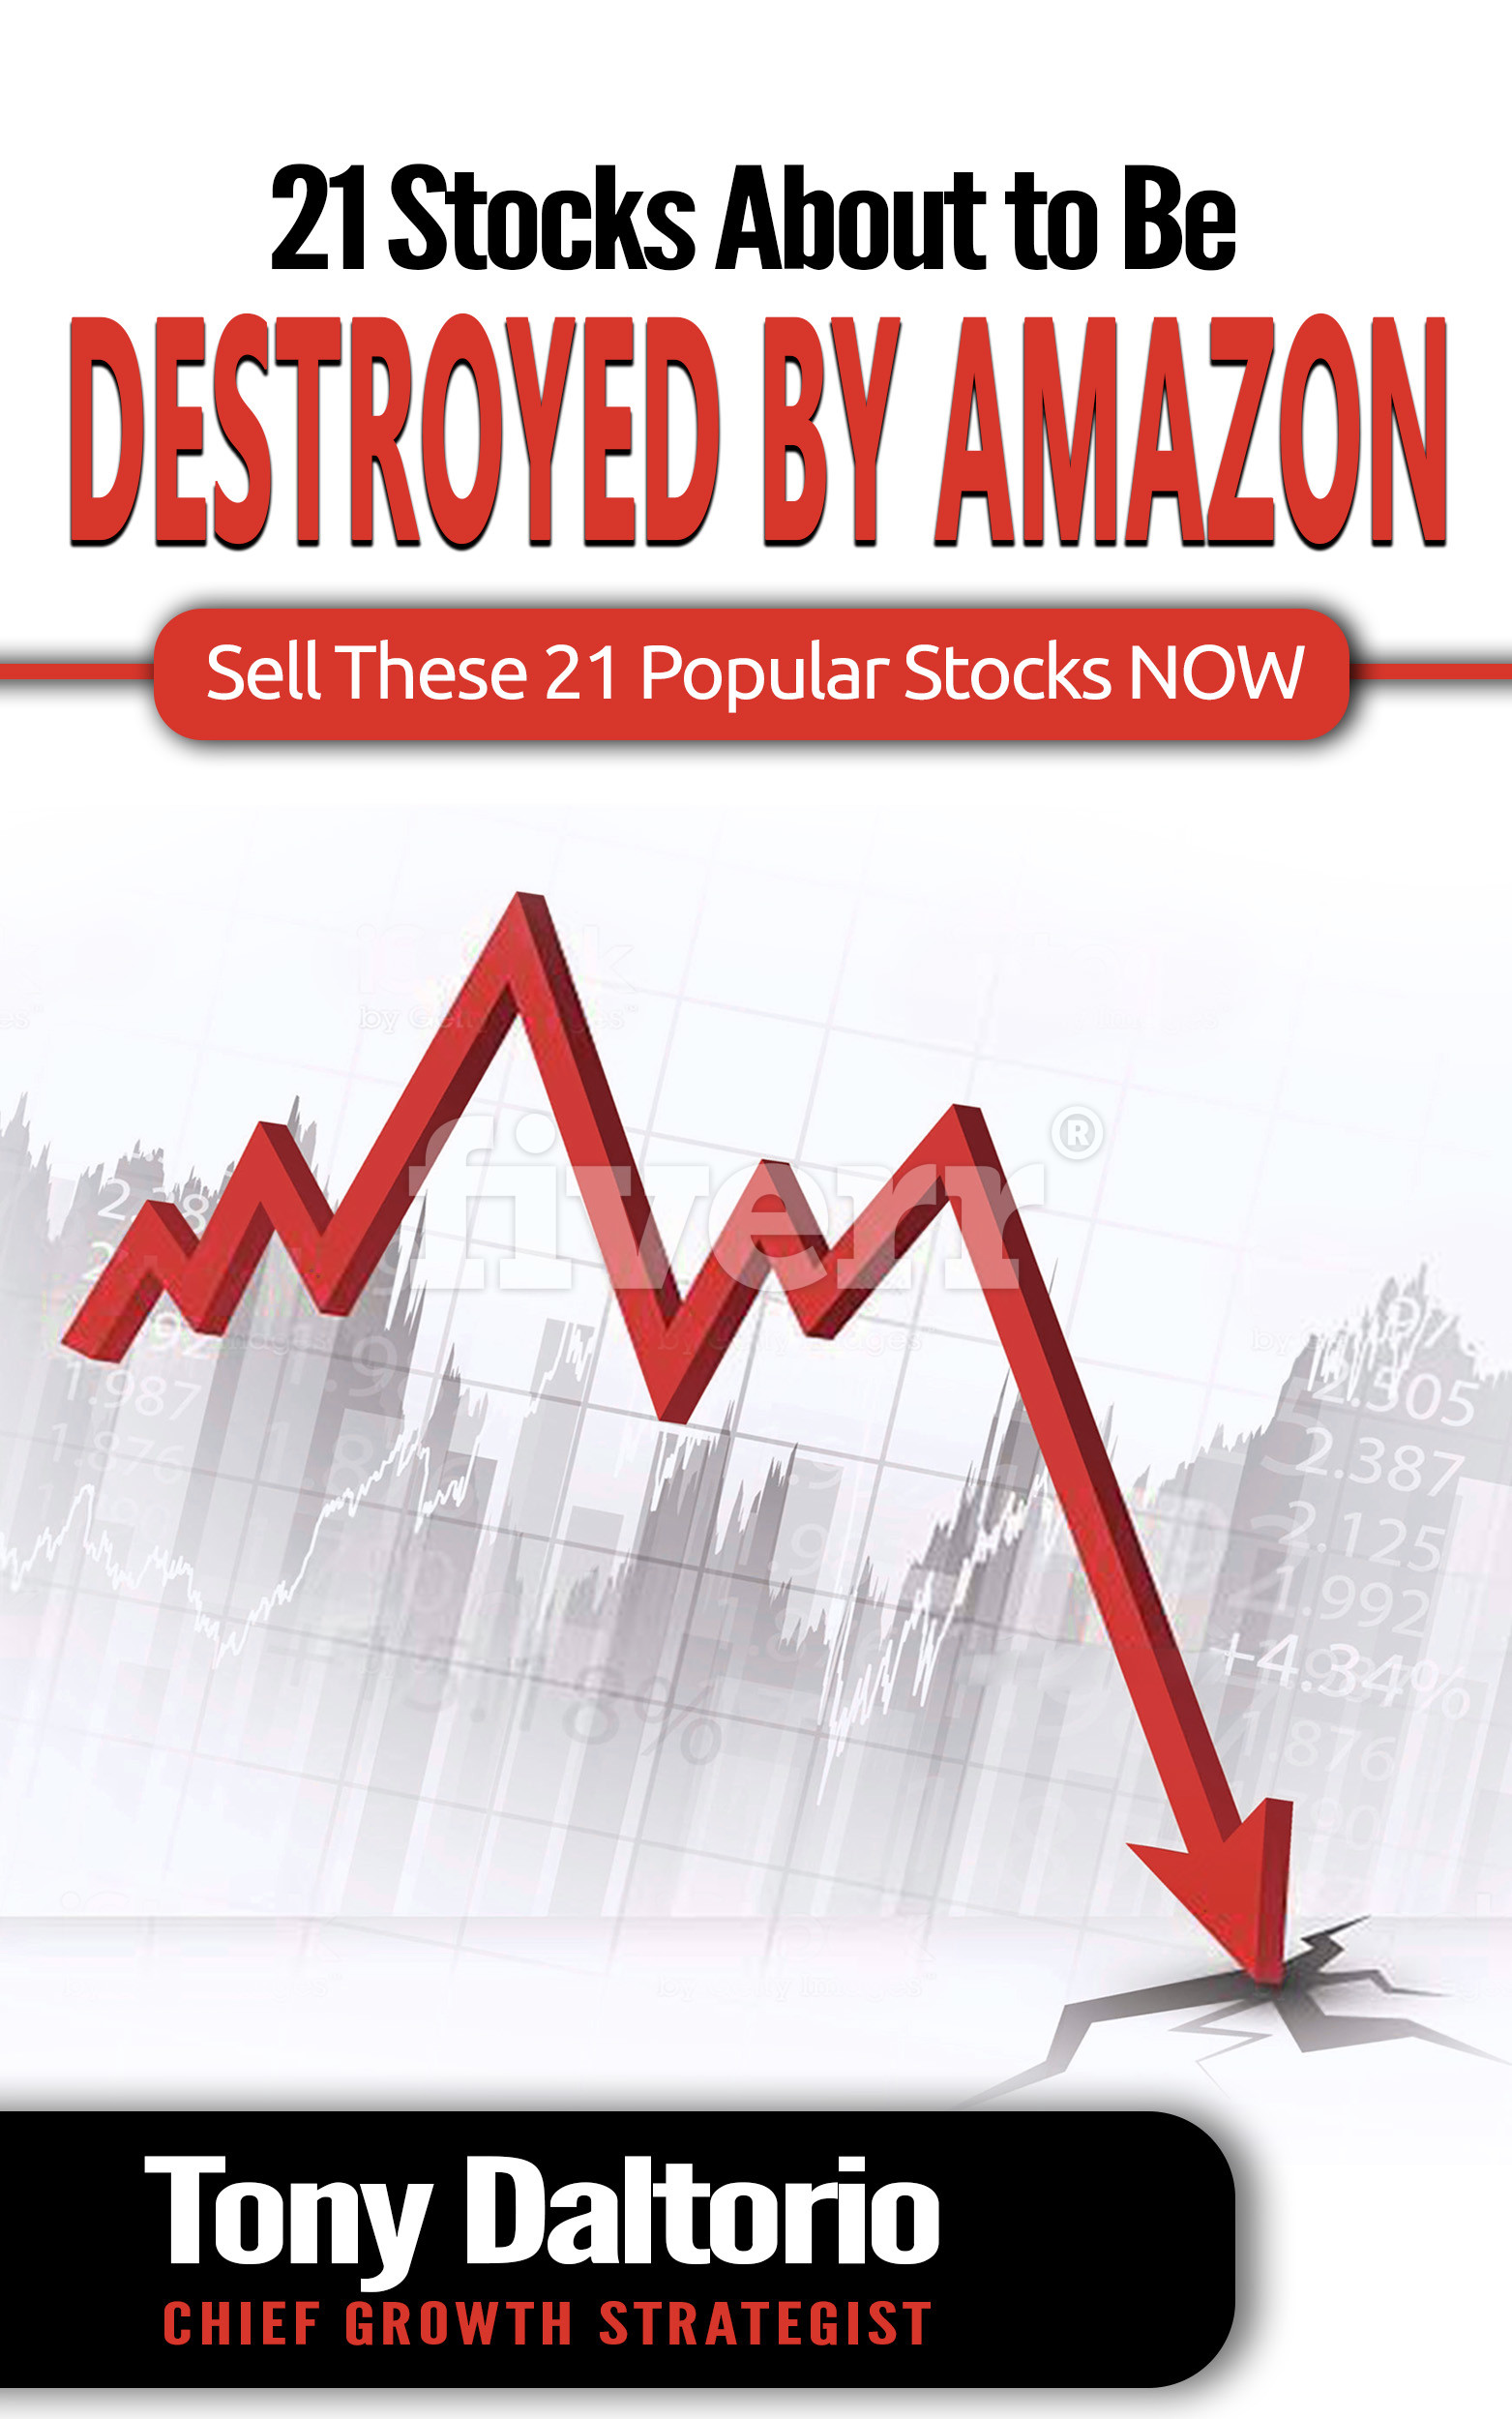 [NEW REPORT] 21 Stocks About to Be Destroyed By Amazon